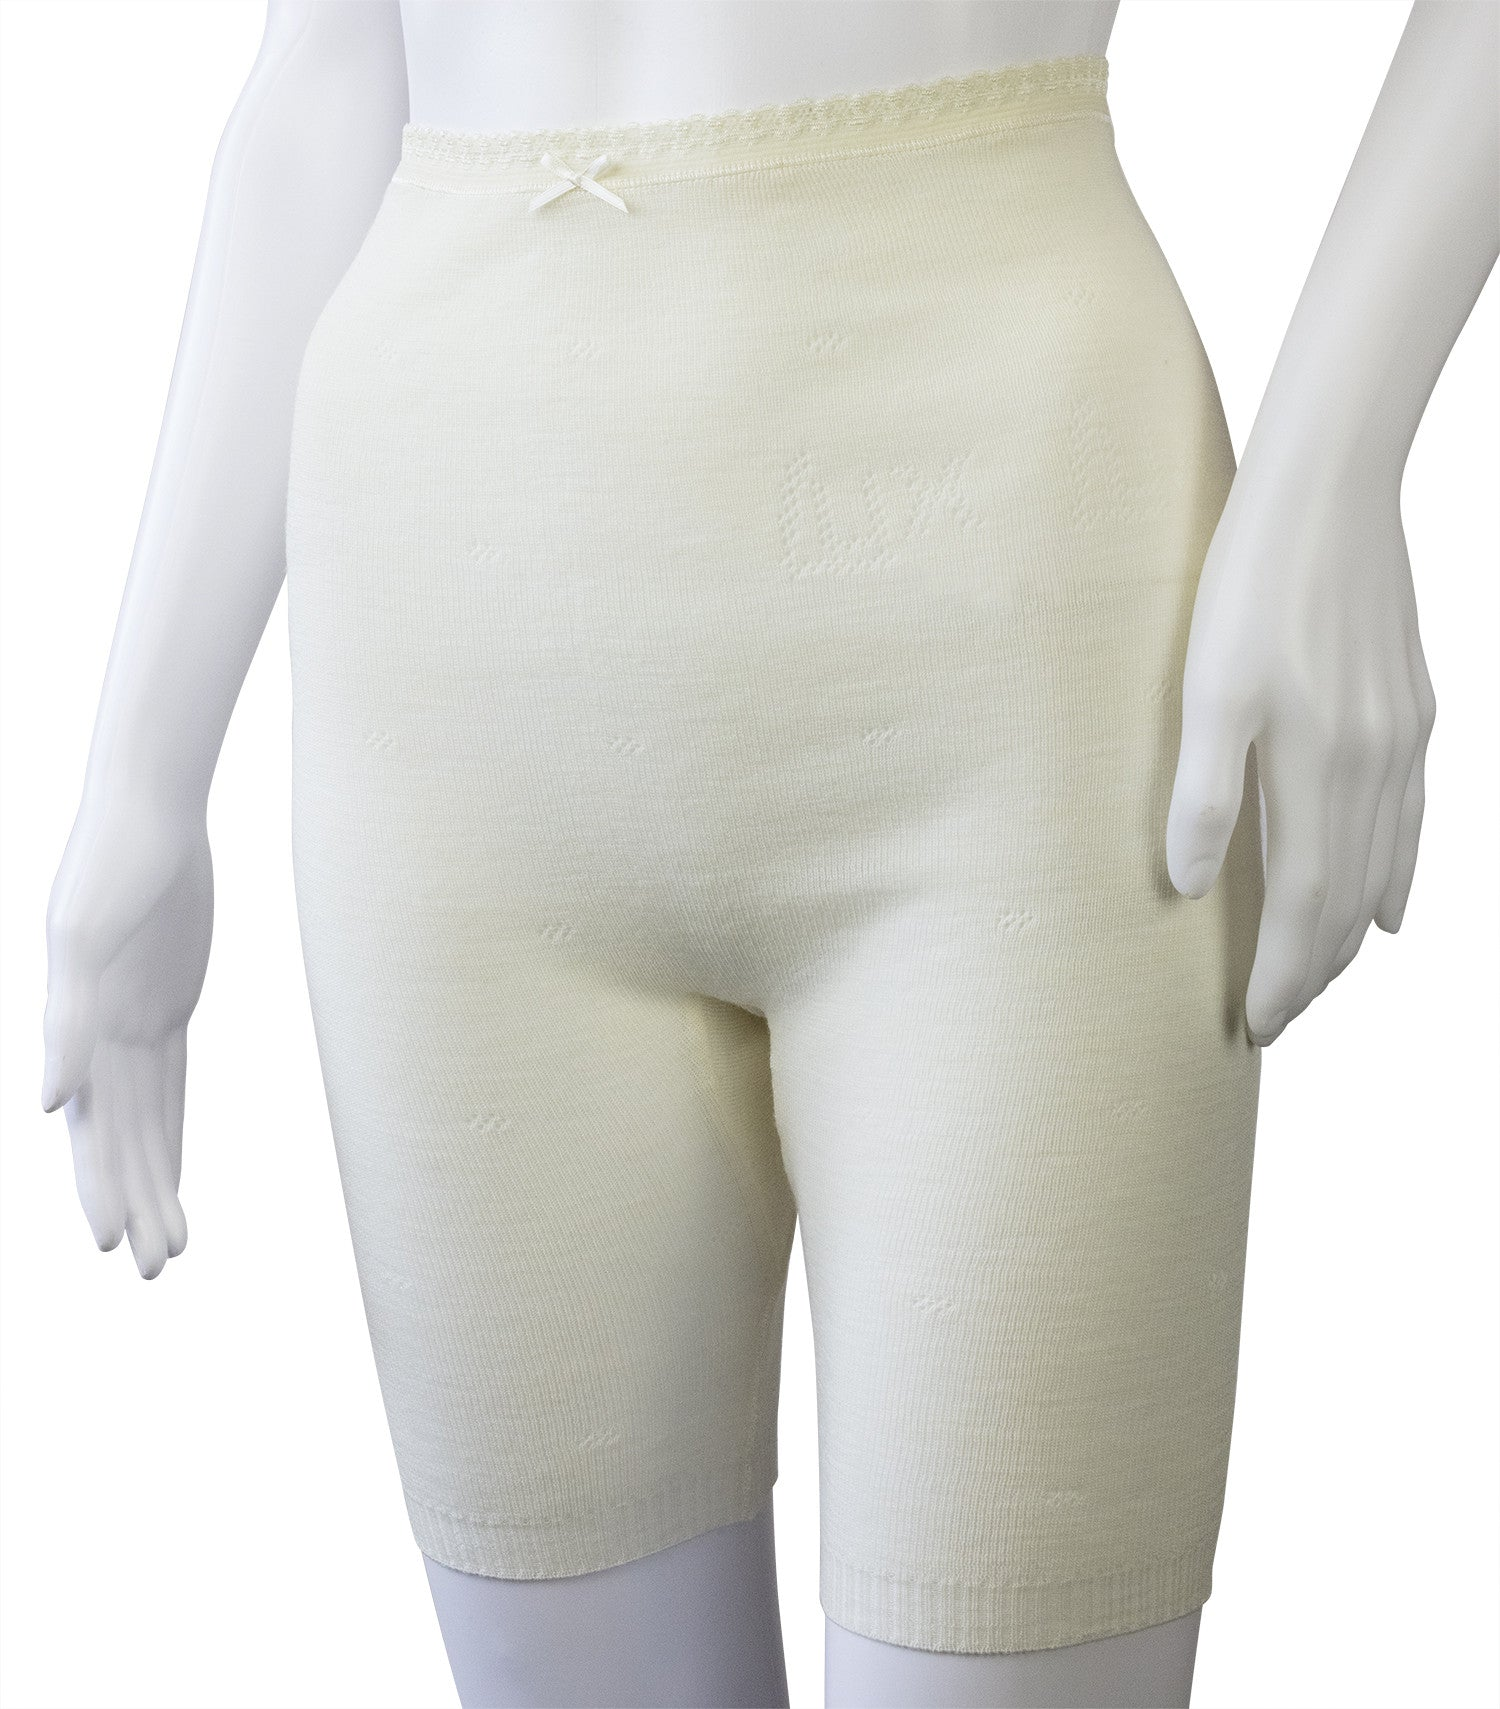 Longer Length Pantee, Natural